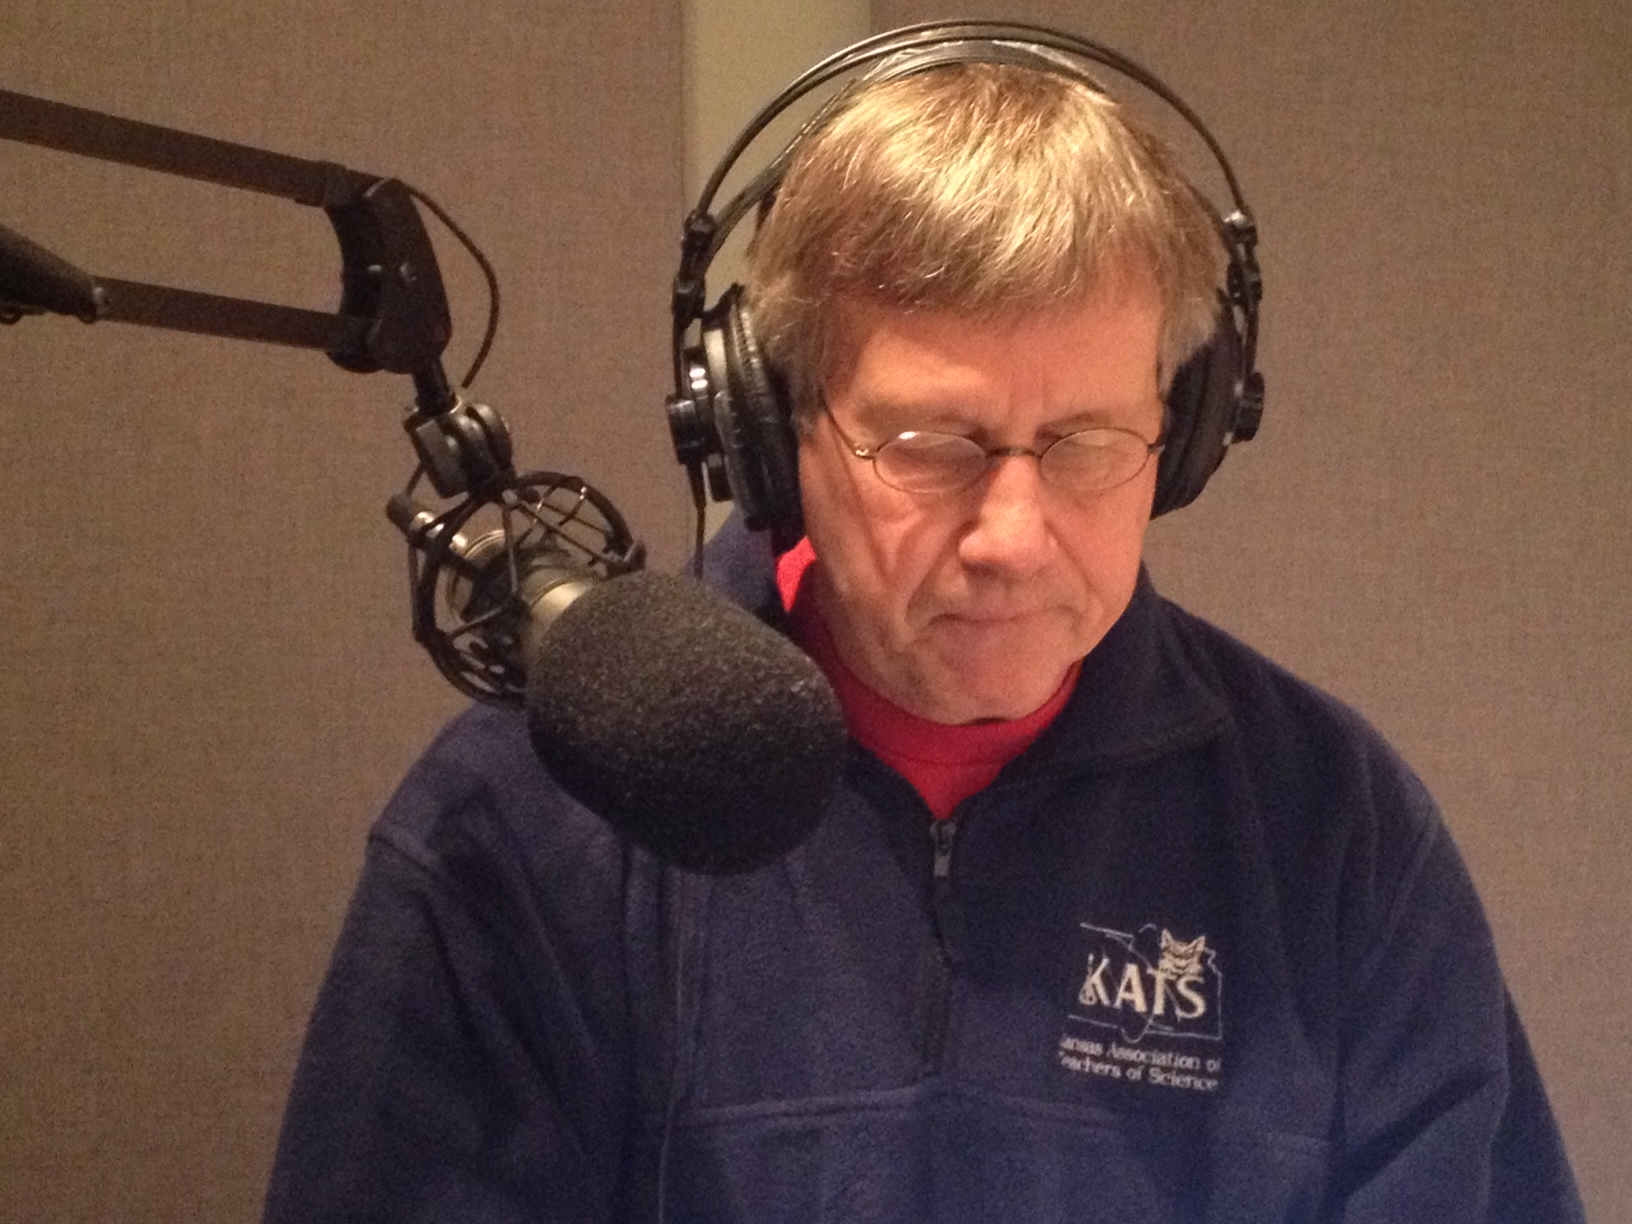 Rex Buchanan, recording a commentary in Studio D, at Kansas Public Radio. (Photo by J. Schafer)